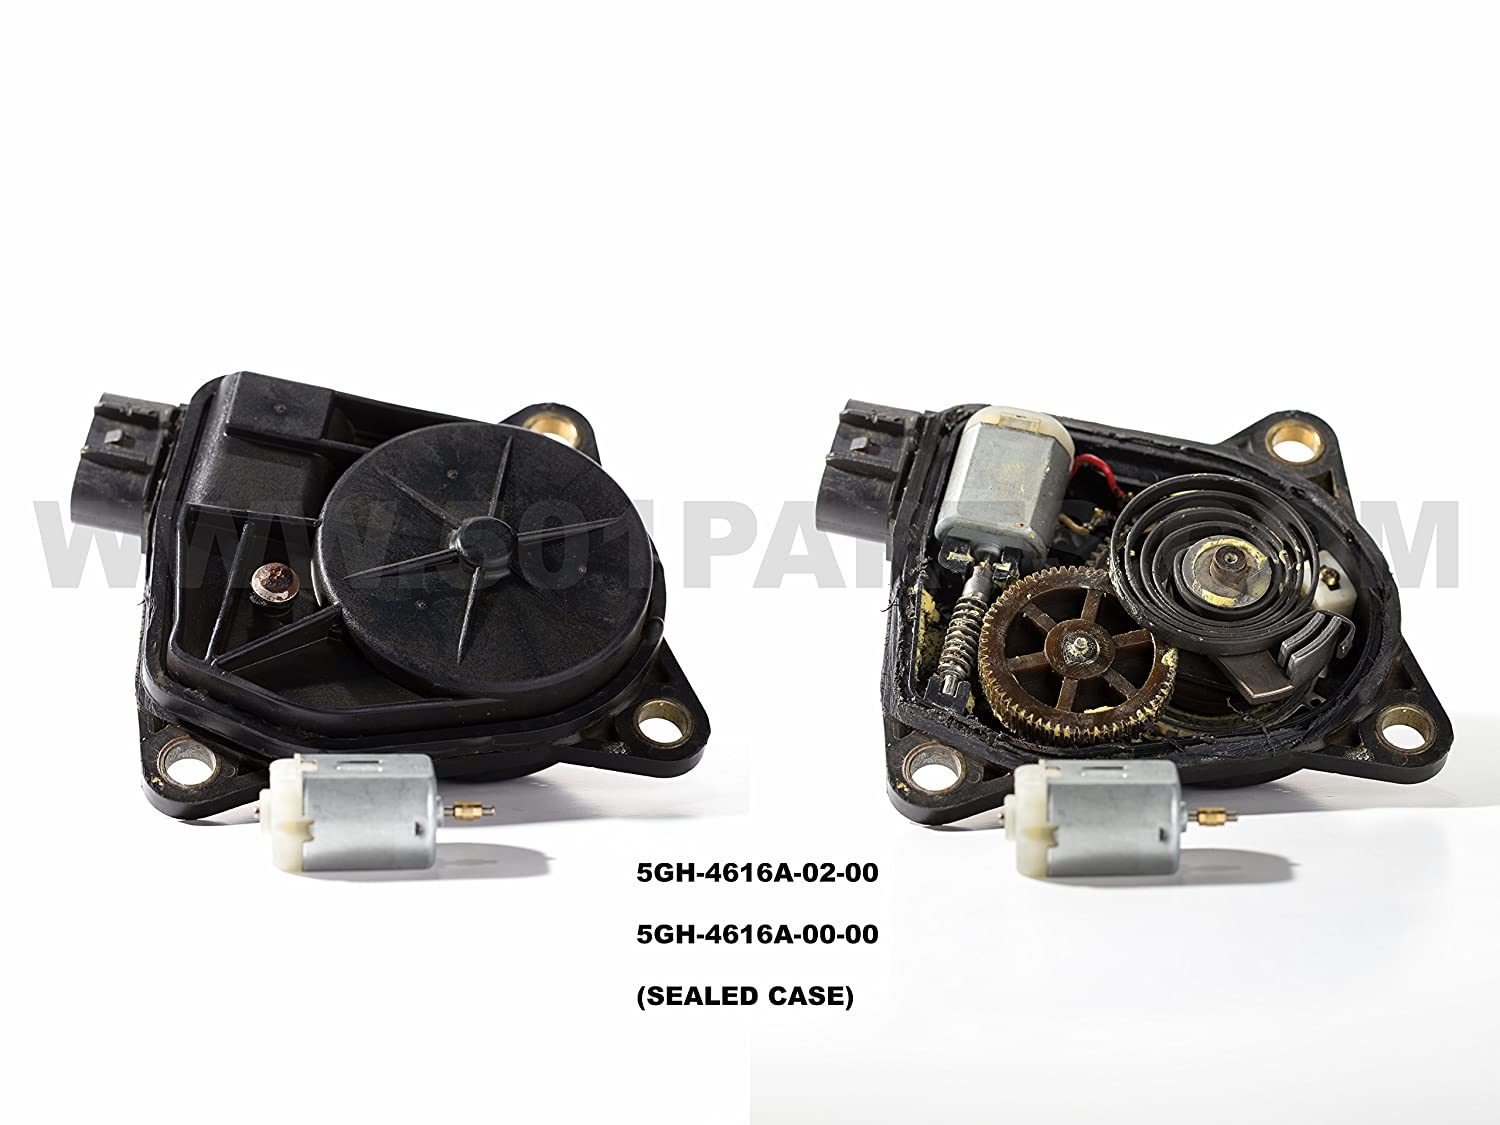 Yamaha Atv 4wd Servo Actuator Motor Only 5km 4616a 02 Grizzly Cdi Box Wiring Diagram 00 5gh Automotive